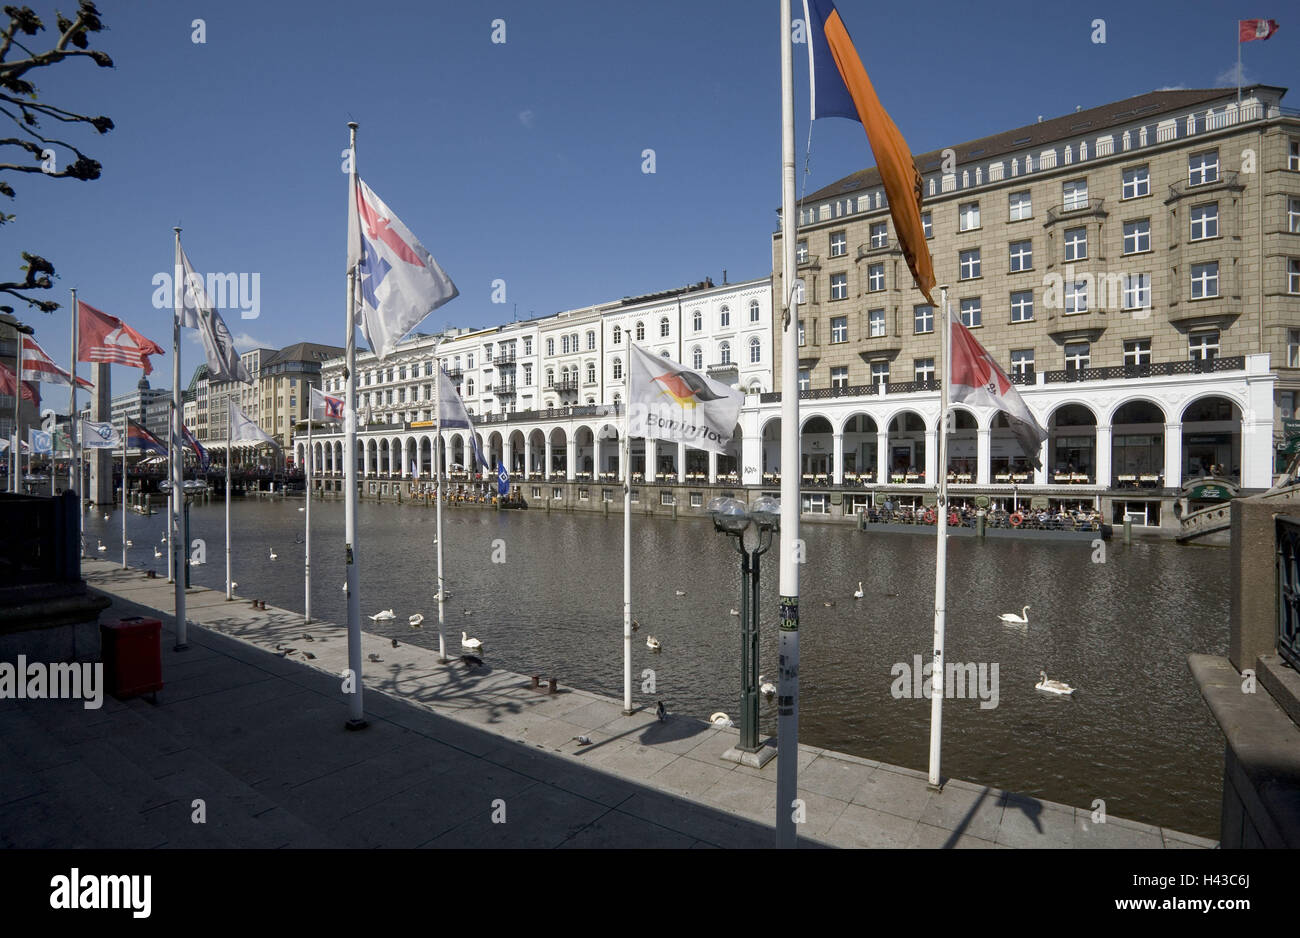 Germany, Hamburg, Alster arcades, the Alster, Fading, Flags, - Stock Image